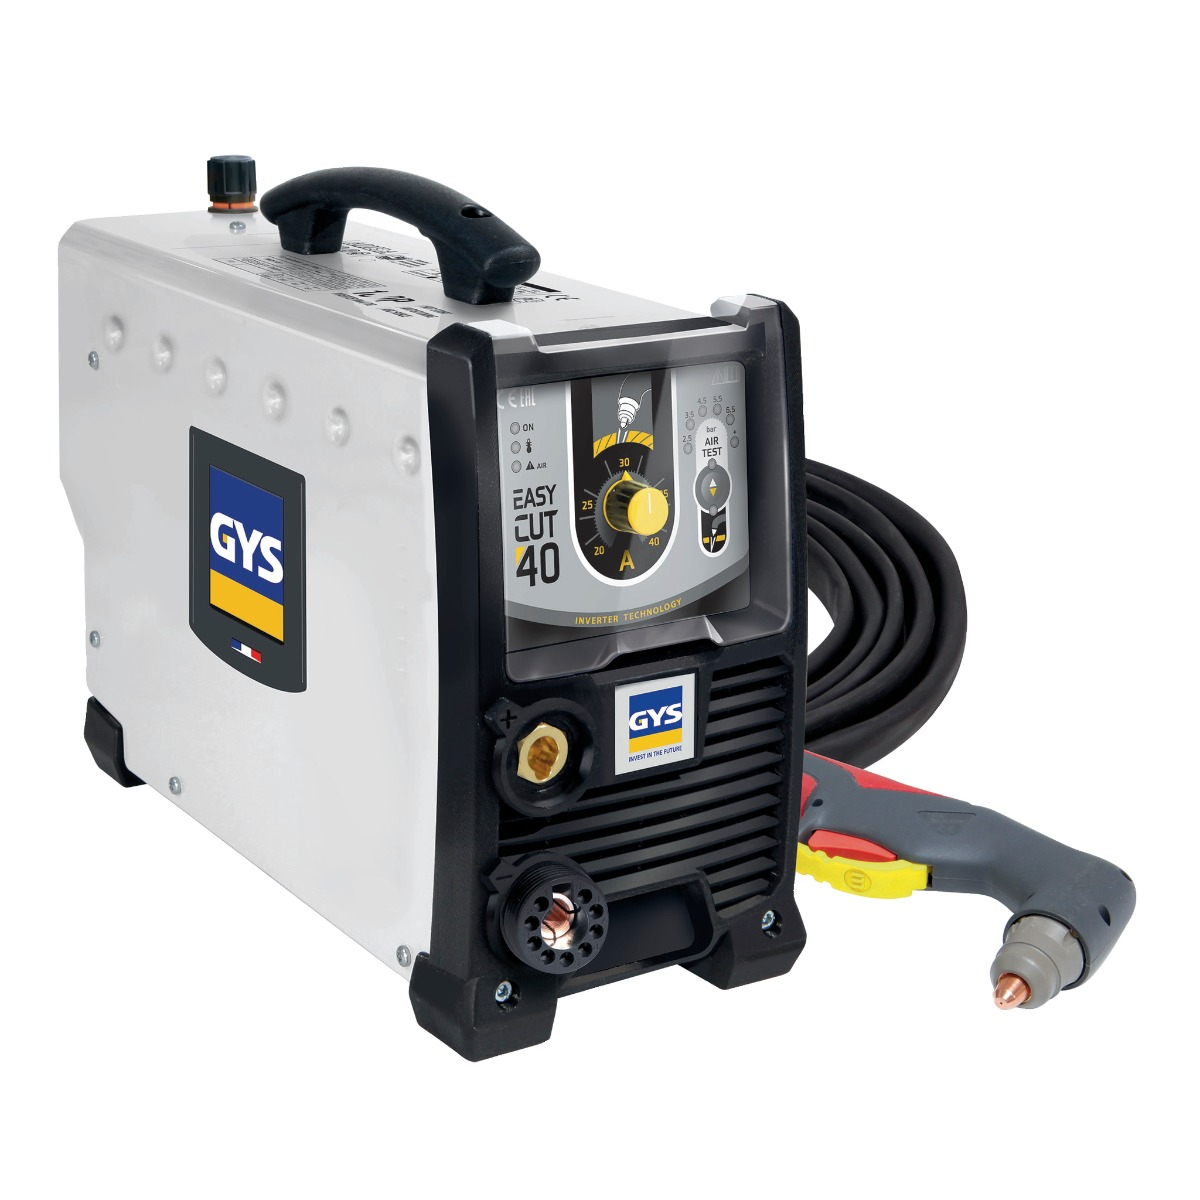 GYS 029743 Plasma Cutter Easycut 40 - Torch Included